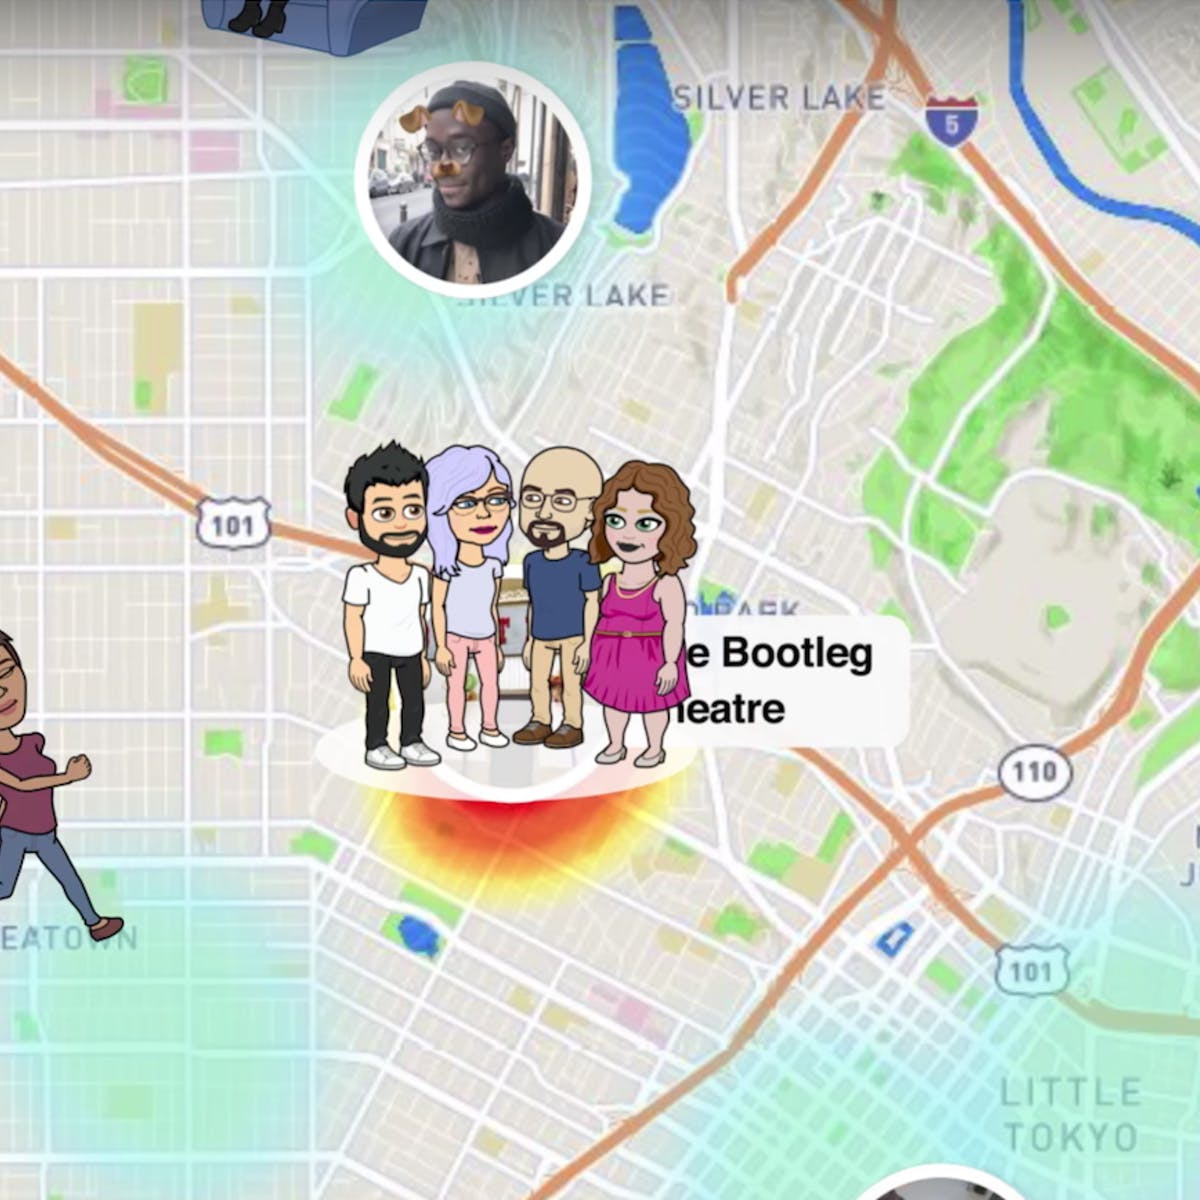 Snapchat Just Created a Marauder's Map for the Entire World